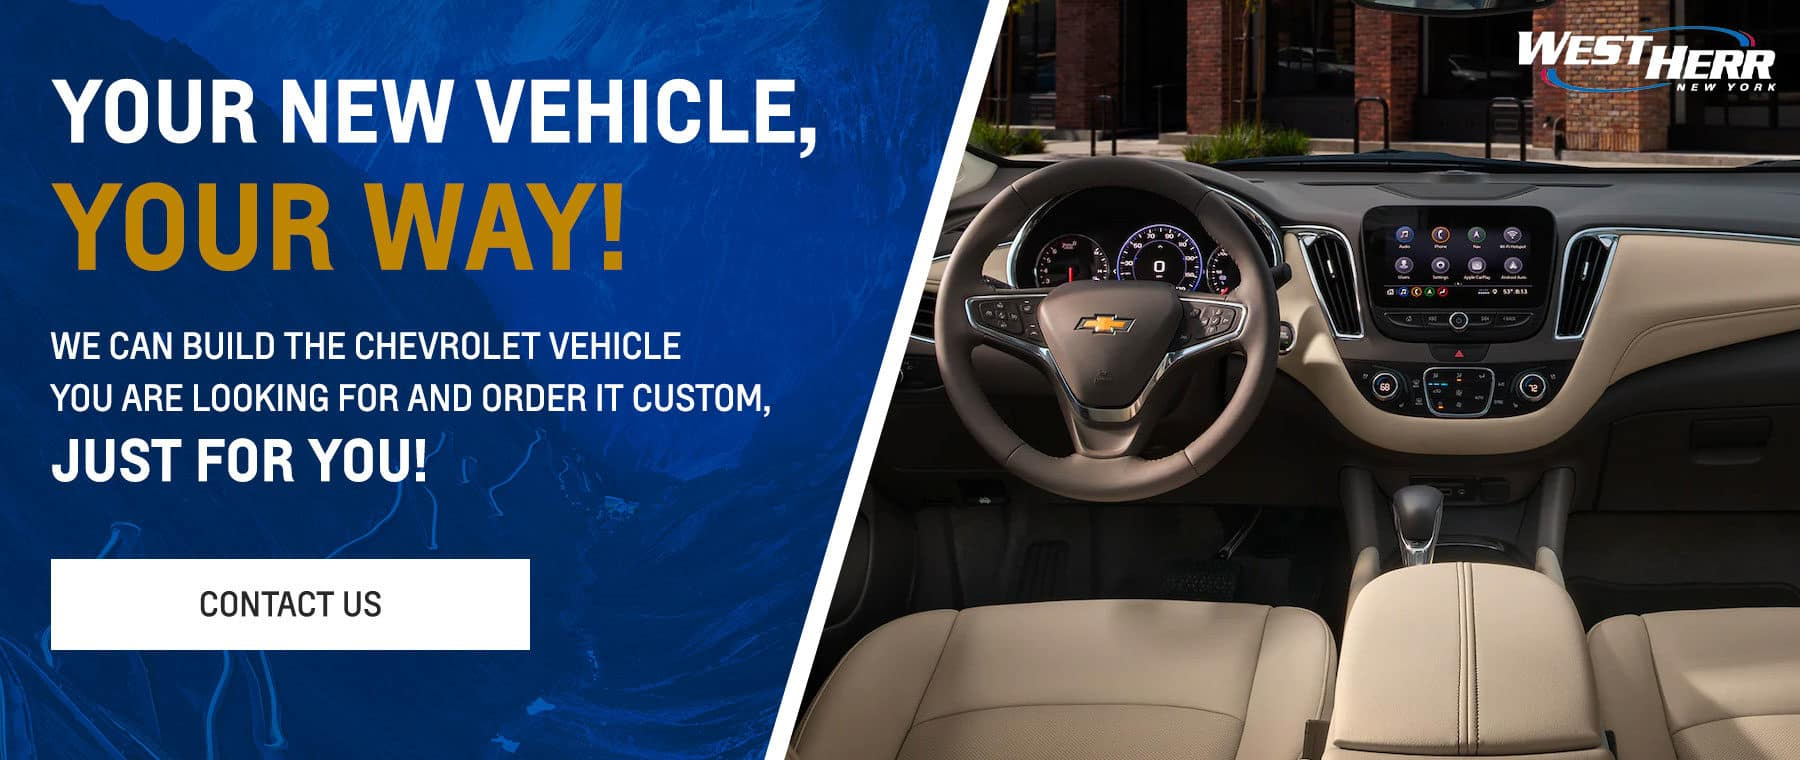 Your new vehicle, your way! Subtext: We can build the Chevrolet vehicle you are looking for and order it custom, just for you!